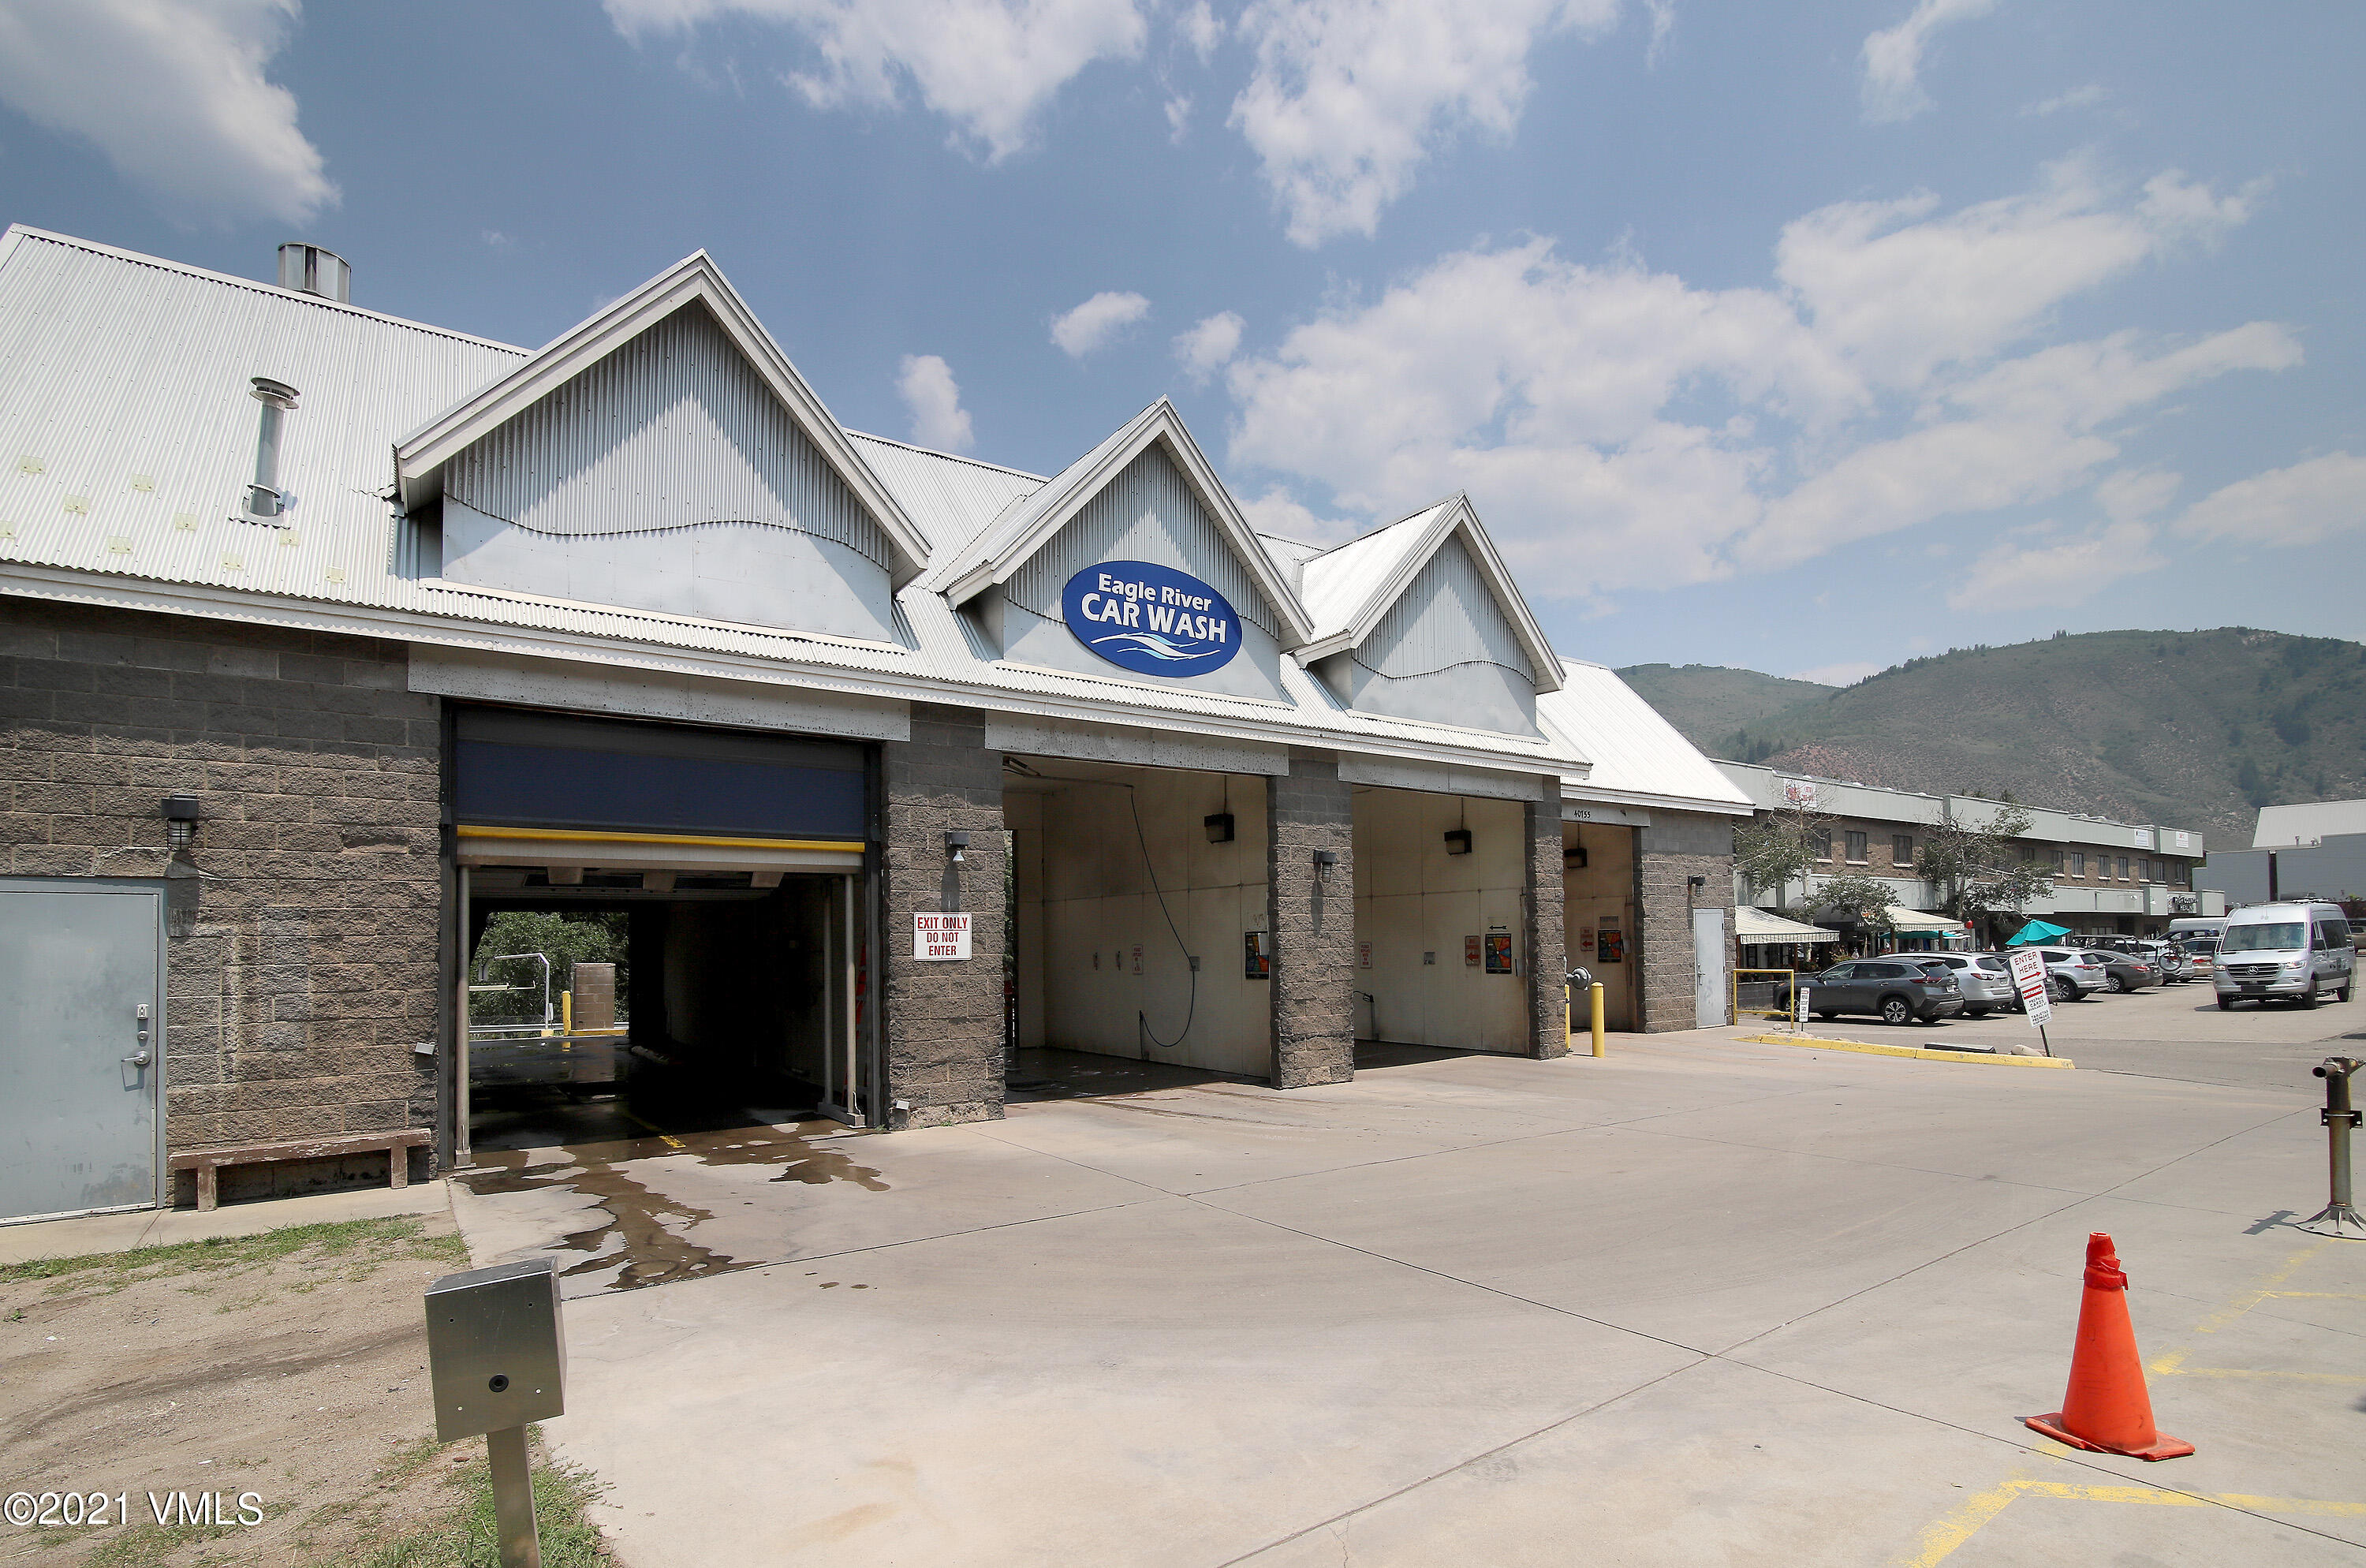 Proprty image for 40801 Hwy 6